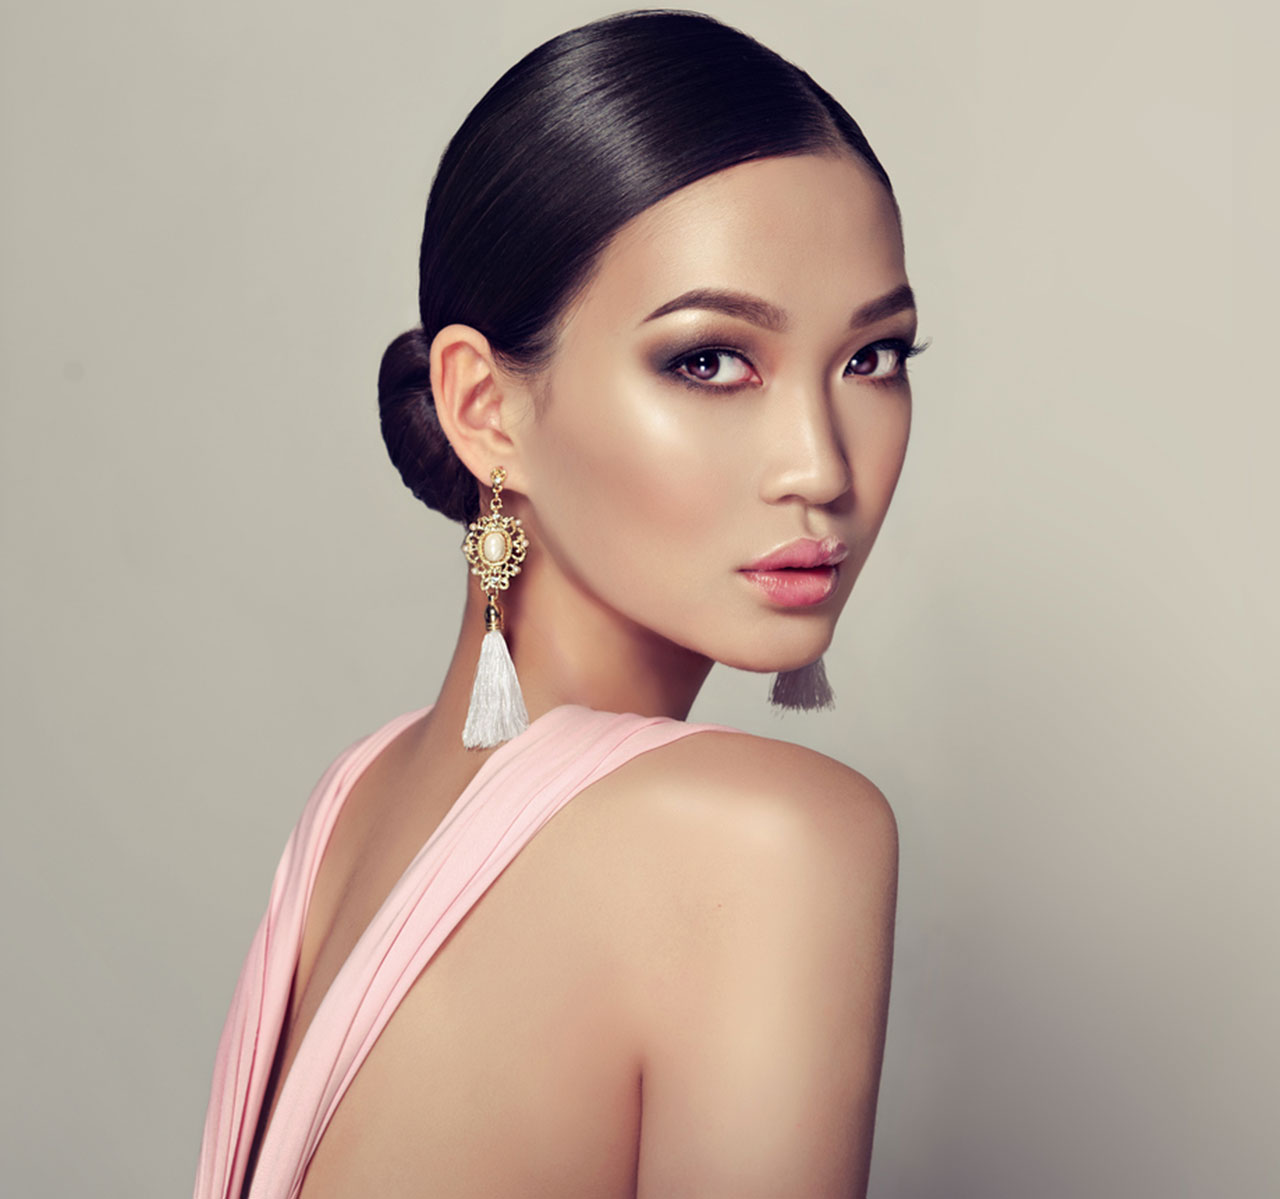 Asian Rhinoplasty NYC